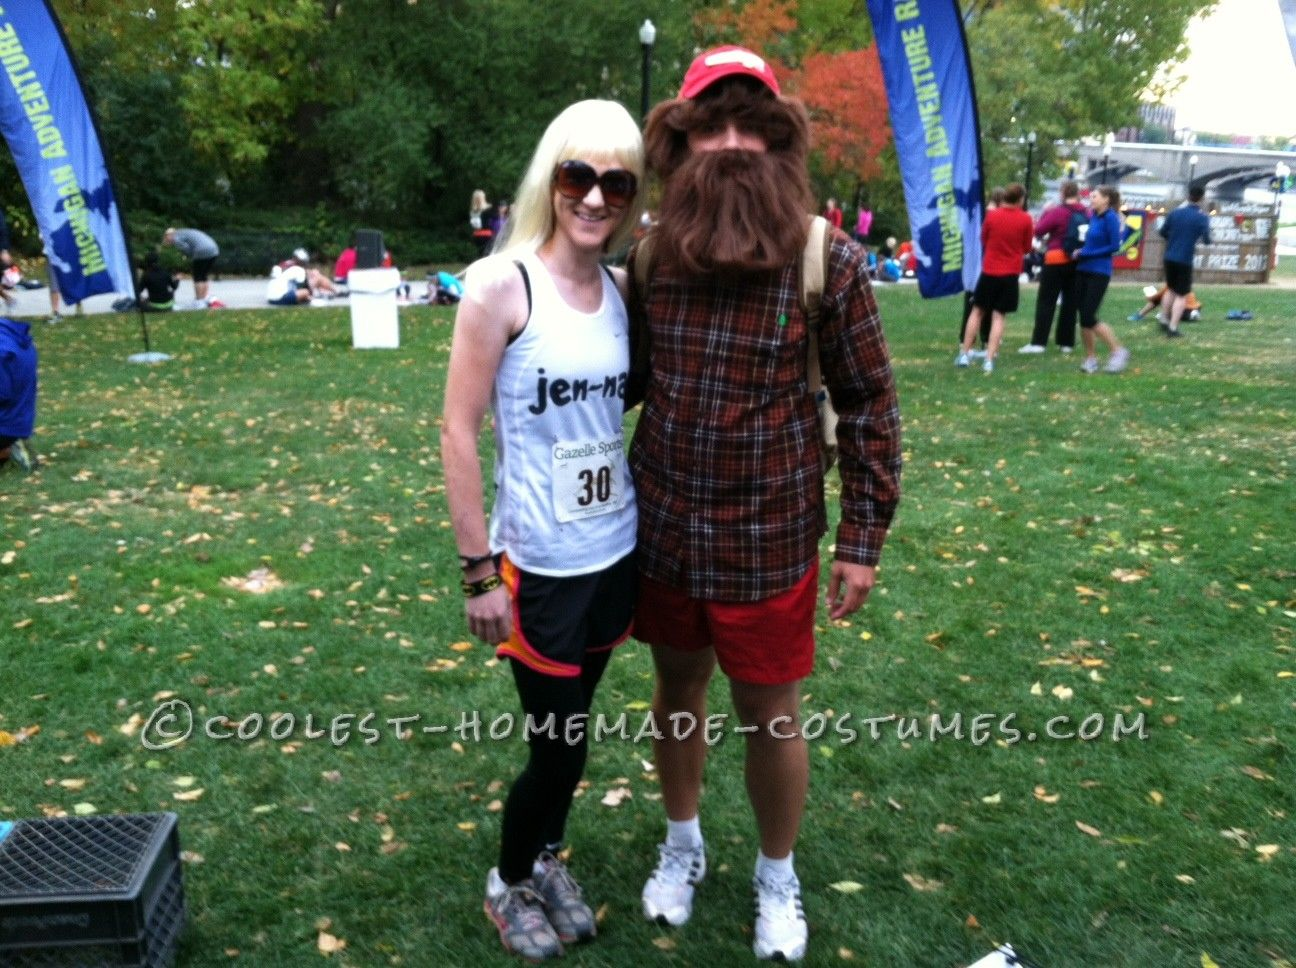 Cool Forrest Gump and Jen-nay Couple Costume... This website is the Pinterest of costumes